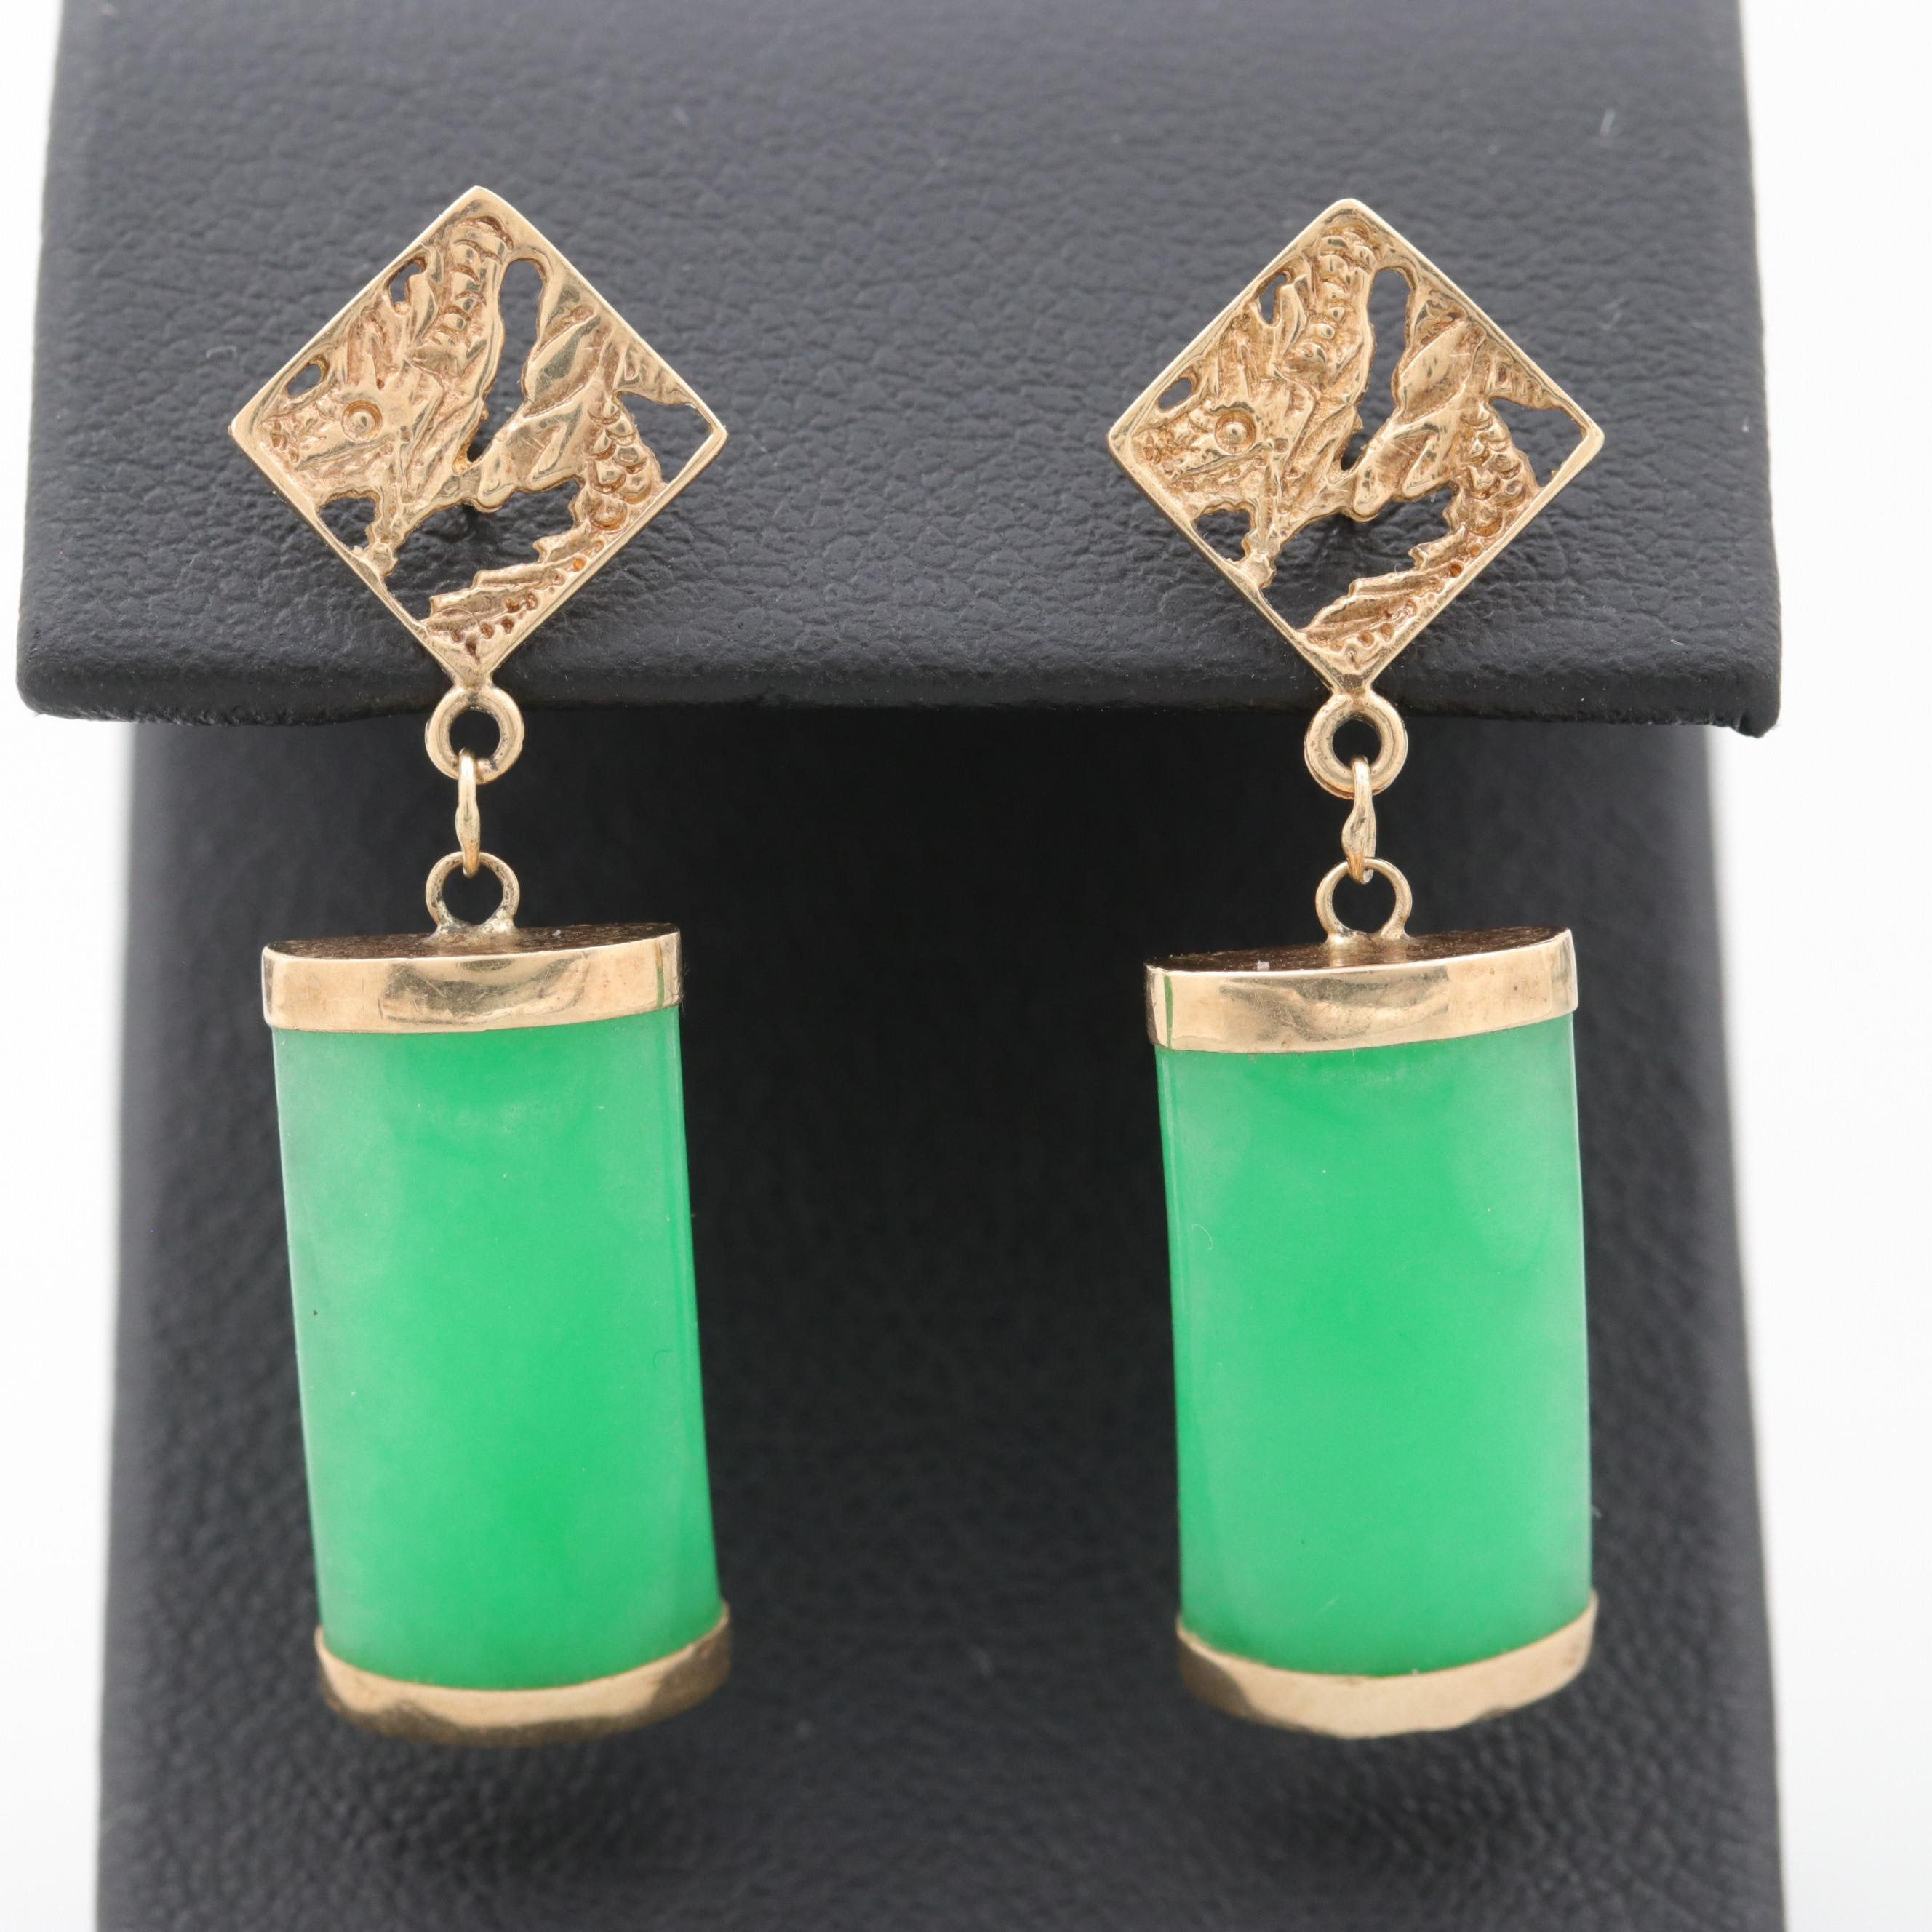 14K Yellow Gold Curved Dome Jadeite Earrings